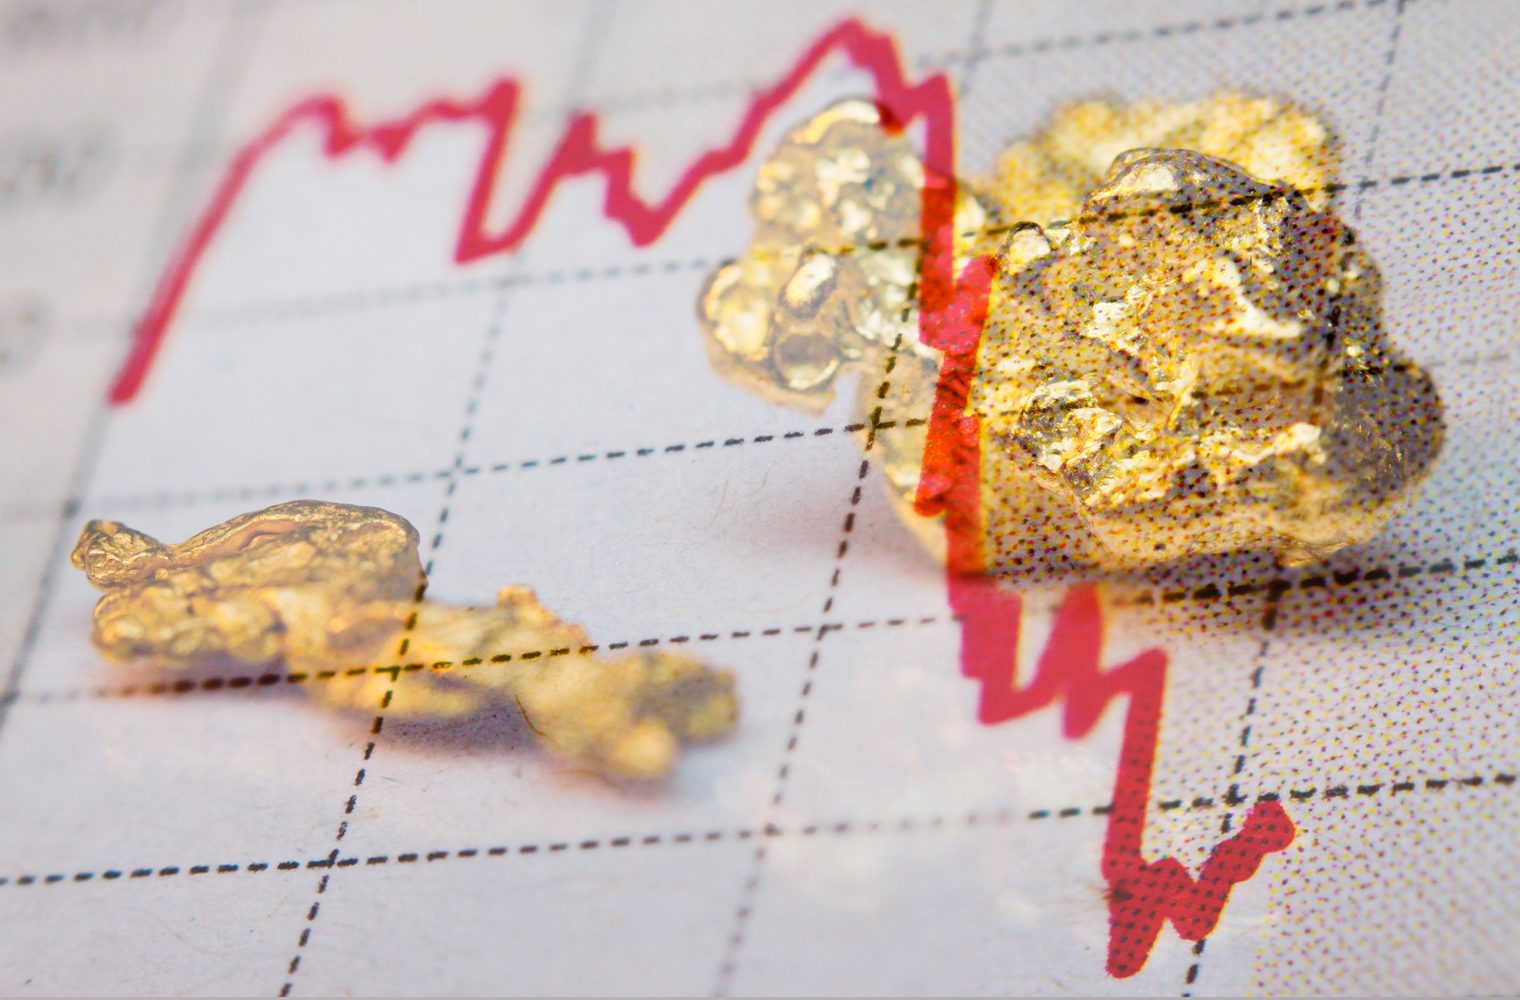 Dutch National Bank Says Gold Can Re-Start Economy in Case of Total Collapse